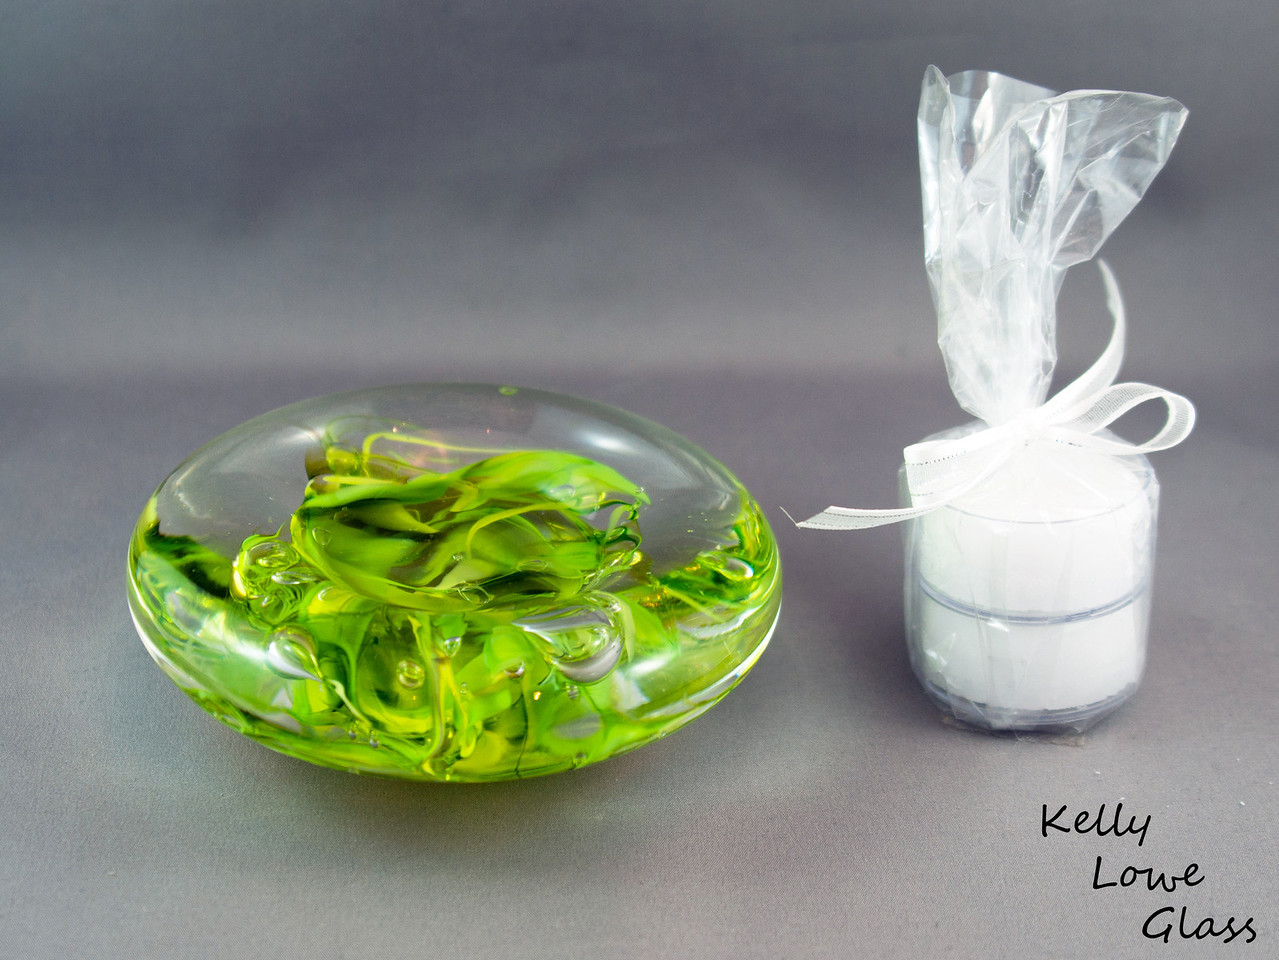 """Green Candle Holder  Dimensions:  Width: Approx 9 to 11.5cm (3.54"""" - 4.53"""") Height: Approx 3 to 3.5cm (1.18"""" - 1.38"""") Weight: Approx 422 to 576g. (0.93 - 1.27 lbs)  Please note: as each piece begins its life as molten glass and is blown/sculpted by hand into the final product, individual pieces might have slight variations in size and/or appearance. Please rest assured however that the standard of quality is quite high, and no substandard pieces will be sold."""